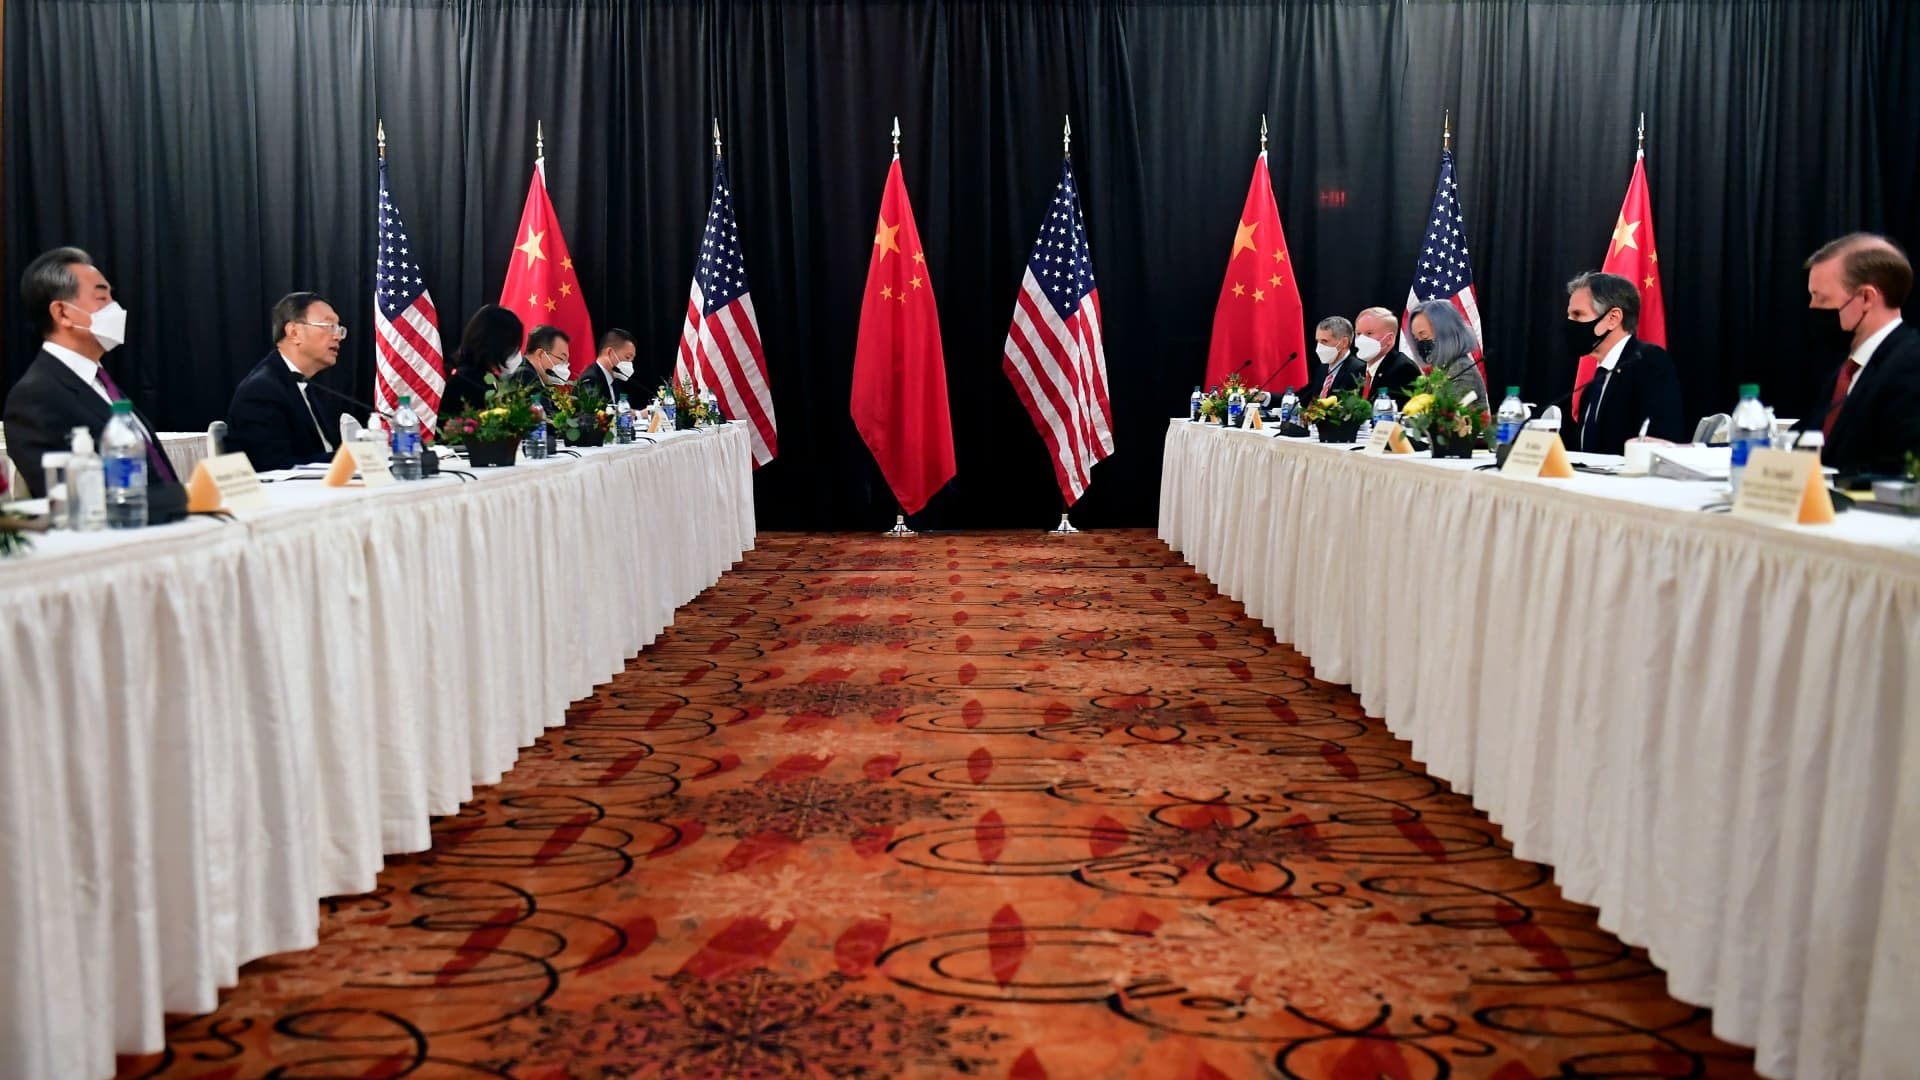 U.S. Secretary of State Antony Blinken (2nd R), joined by national security advisor Jake Sullivan (R), speaks while facing Yang Jiechi (2nd L), director of the Central Foreign Affairs Commission Office, and Wang Yi (L), China's foreign minister at the opening session of U.S.-China talks at the Captain Cook Hotel in Anchorage, Alaska on March 18, 2021.